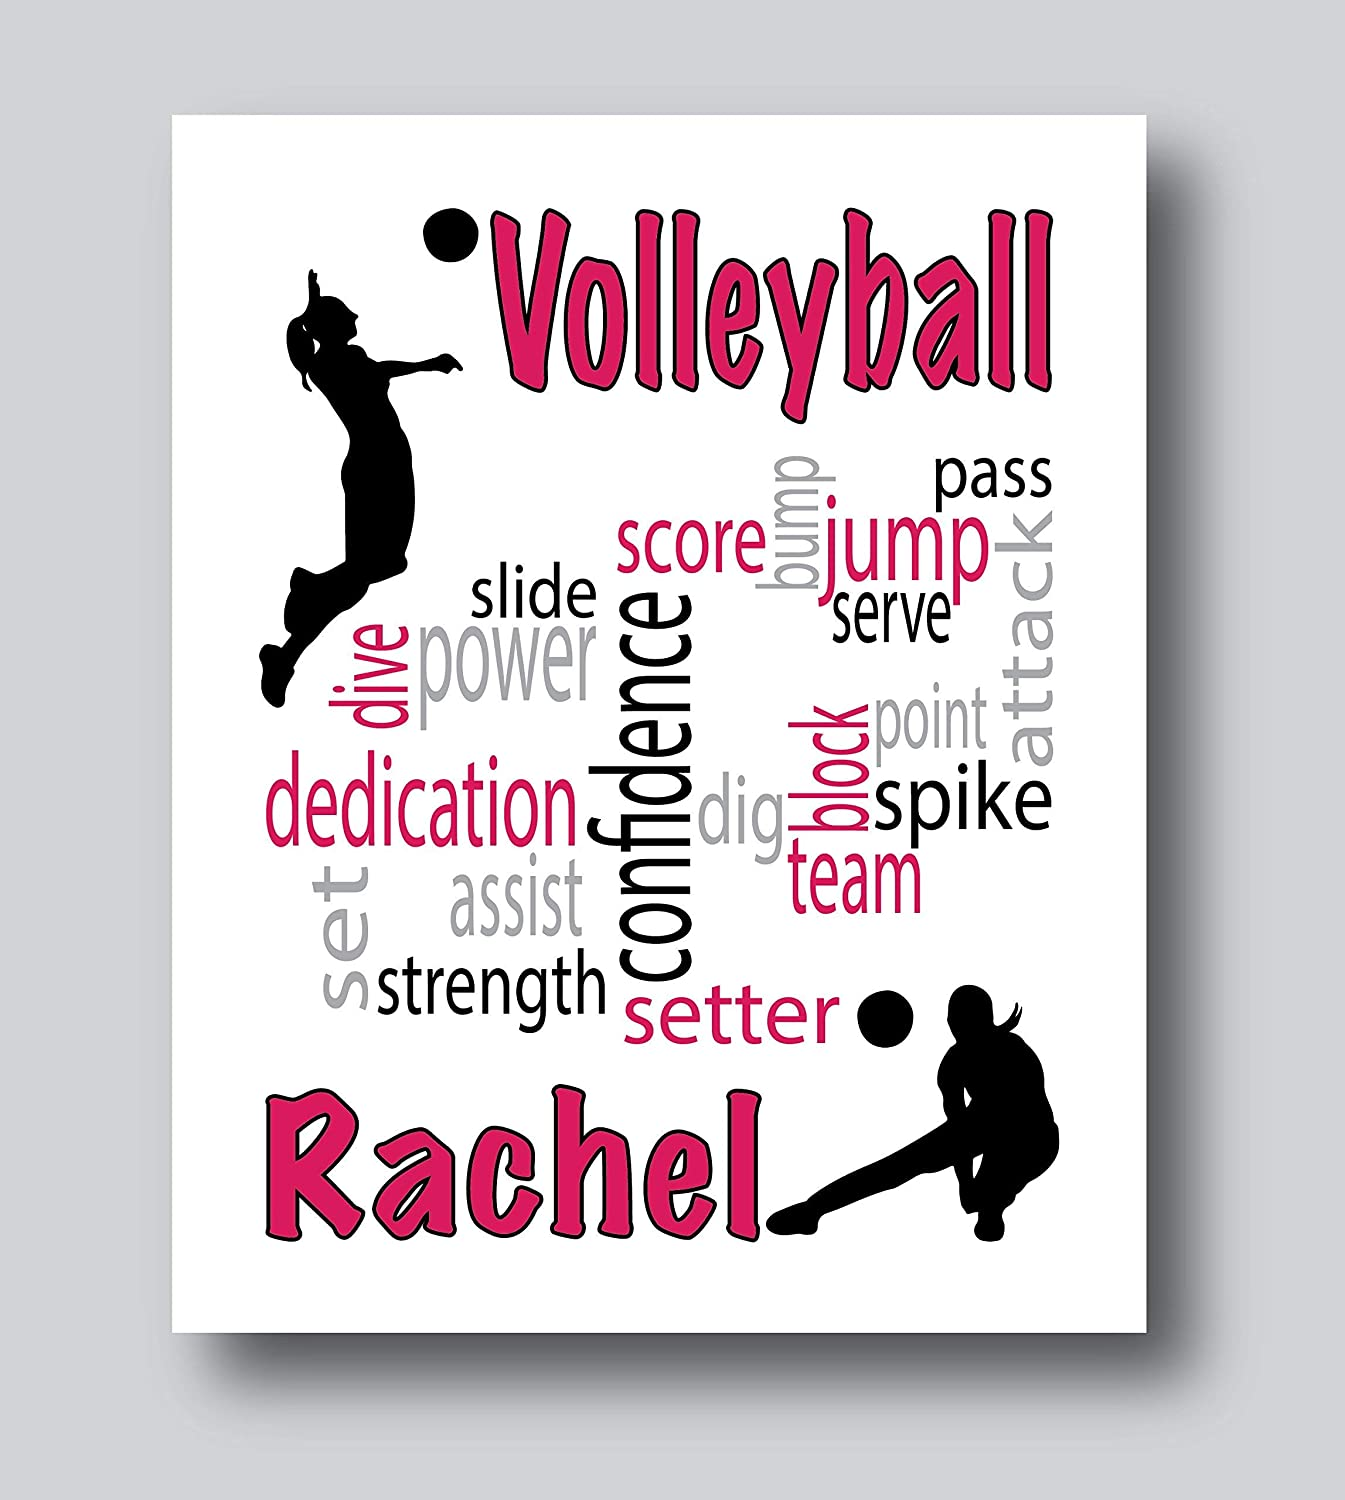 Personalized Volleyball Gifts For Girls Volleyball Decorations For Bedroom 8x10 Or 11x14 Volleyball Print Only Personalized Volleyball Gifts For